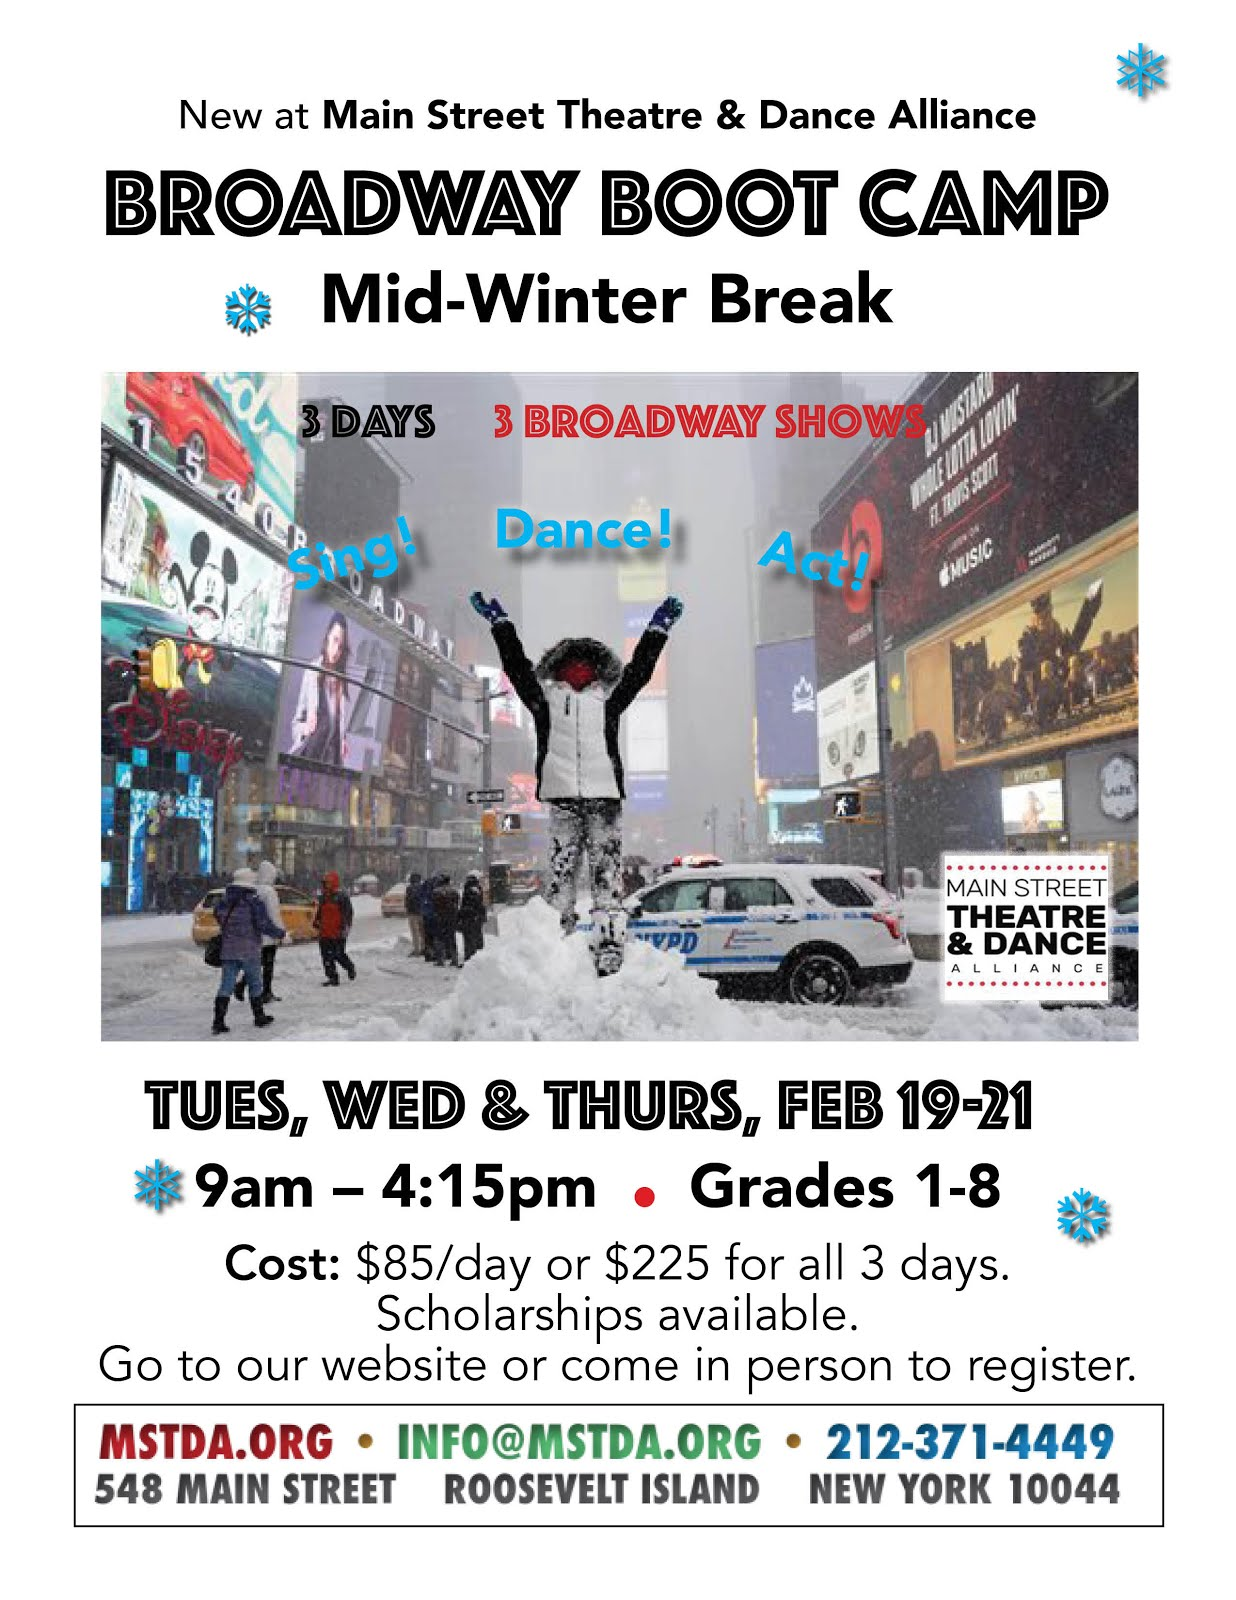 MST&DA Broadway Boot Camp For Kids Grades 1-8